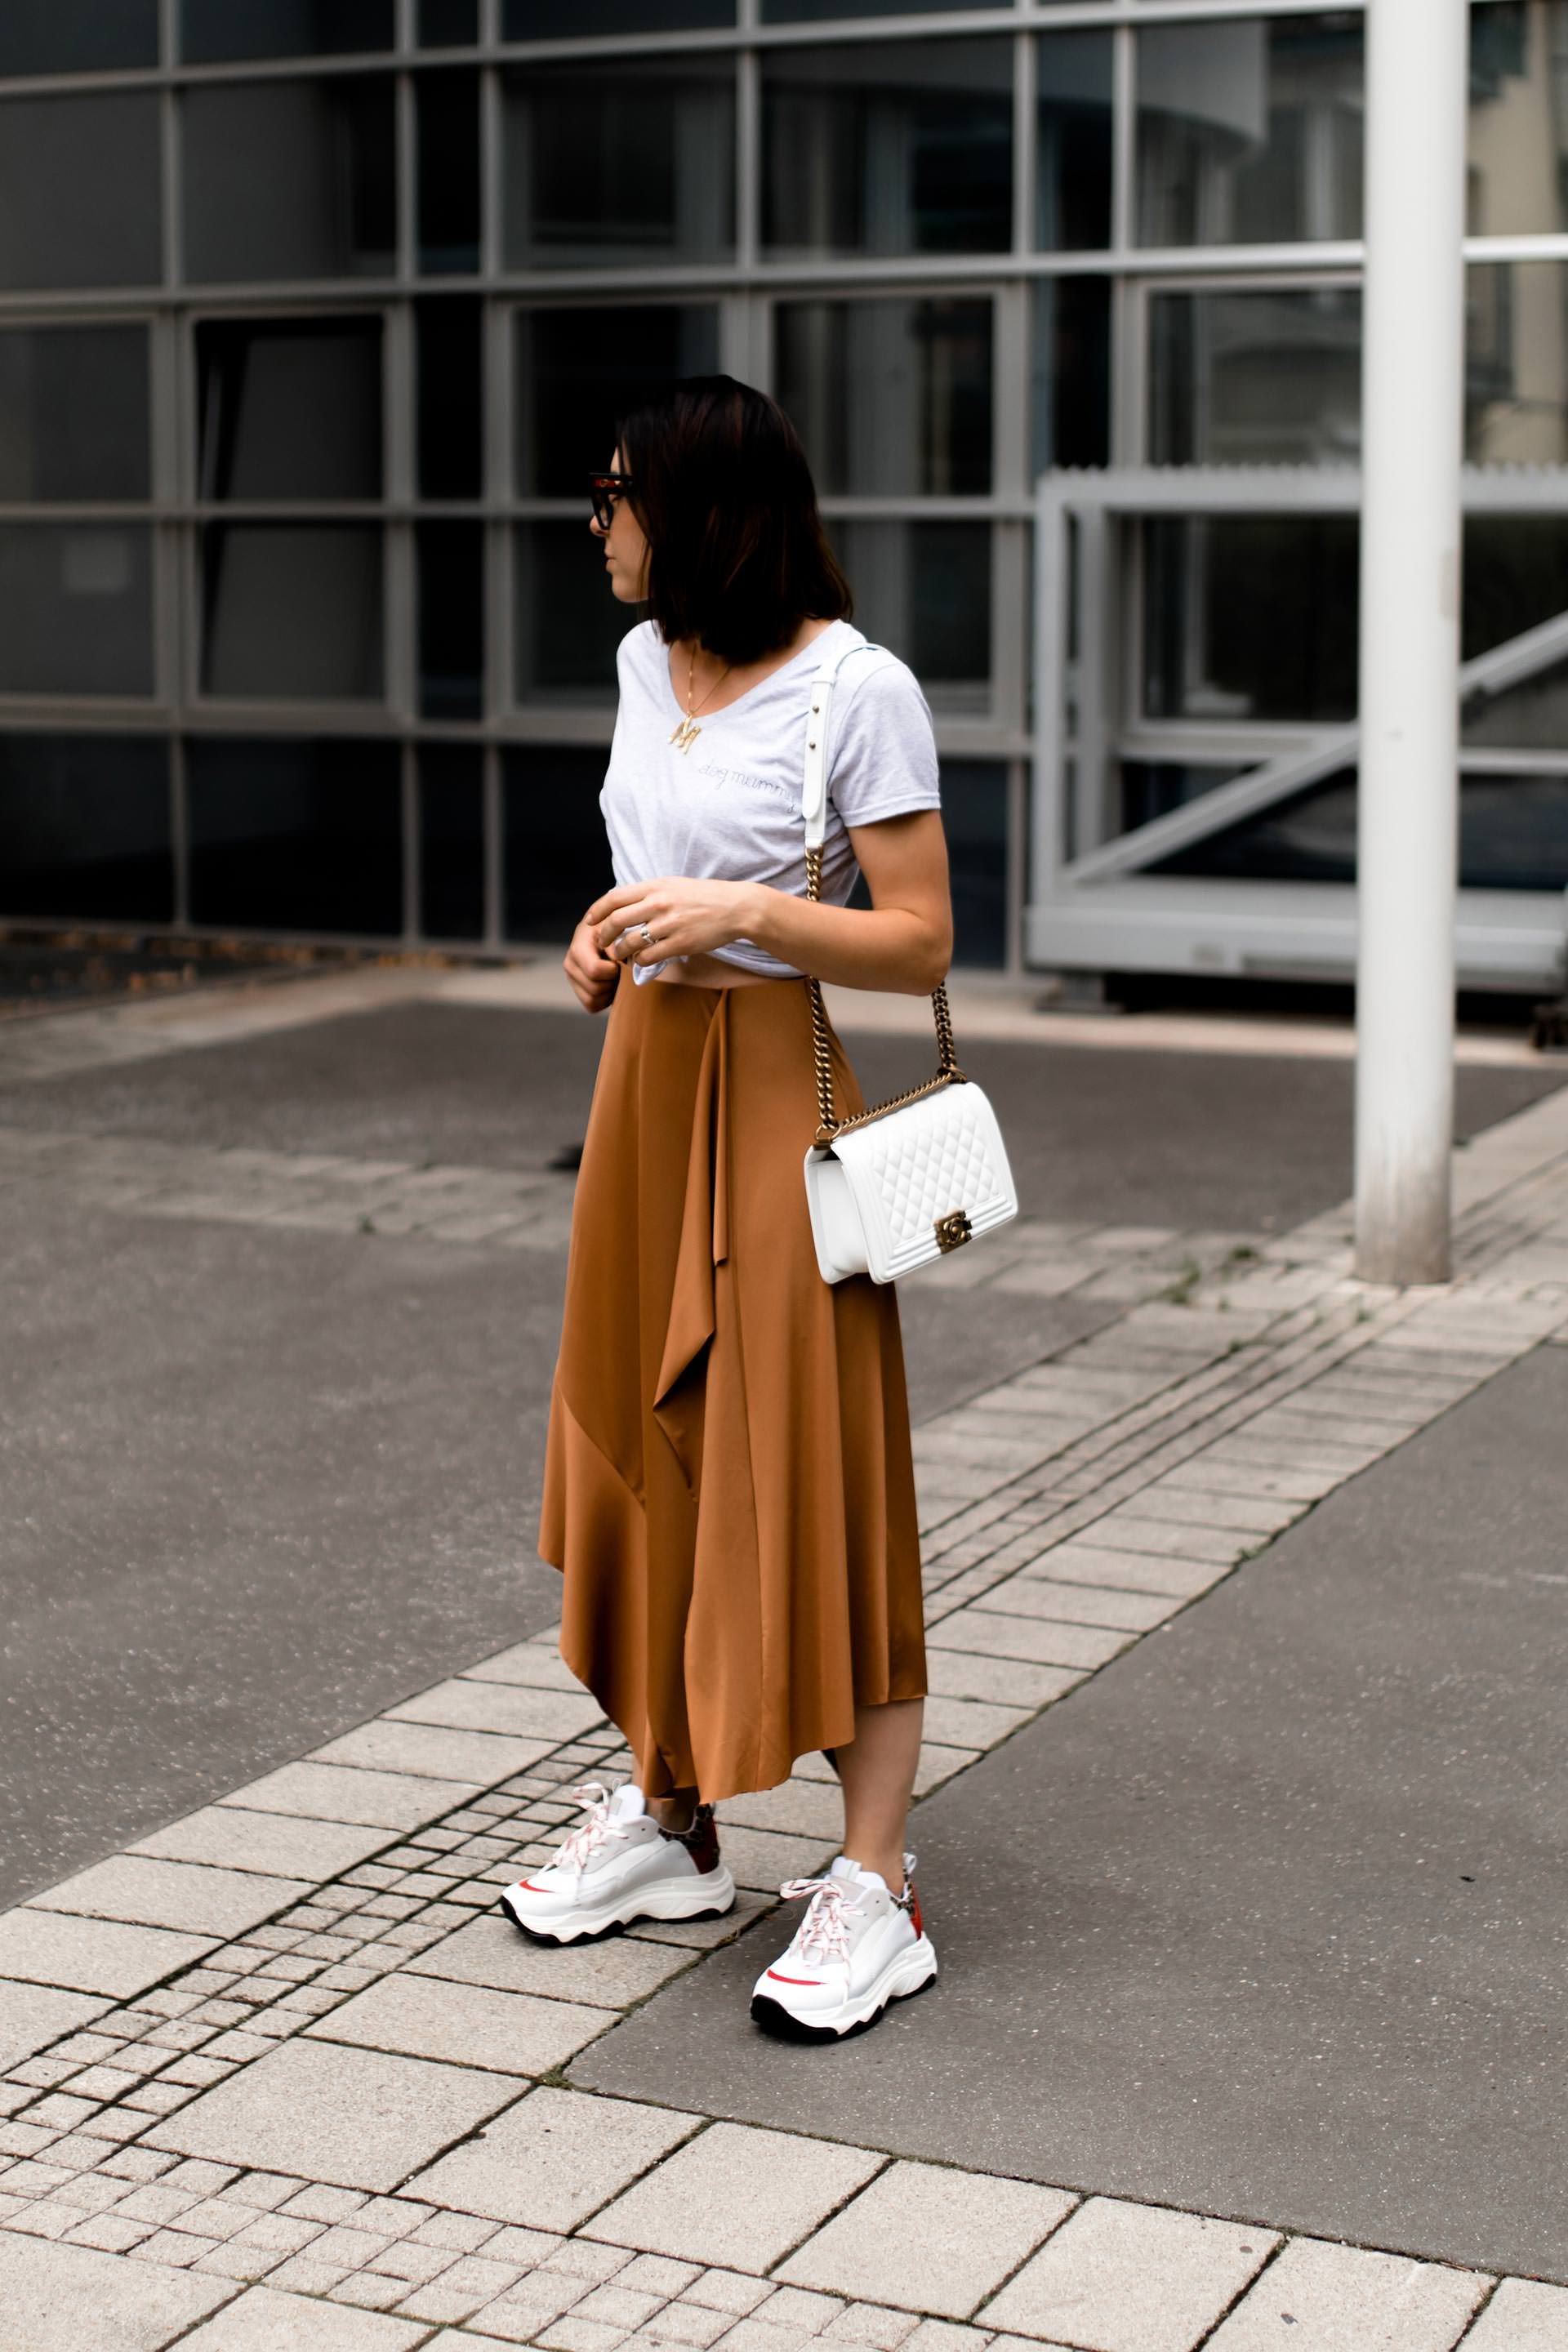 Der Chunky Sneakers Trend: Mein Sommer Outfit mit Midirock